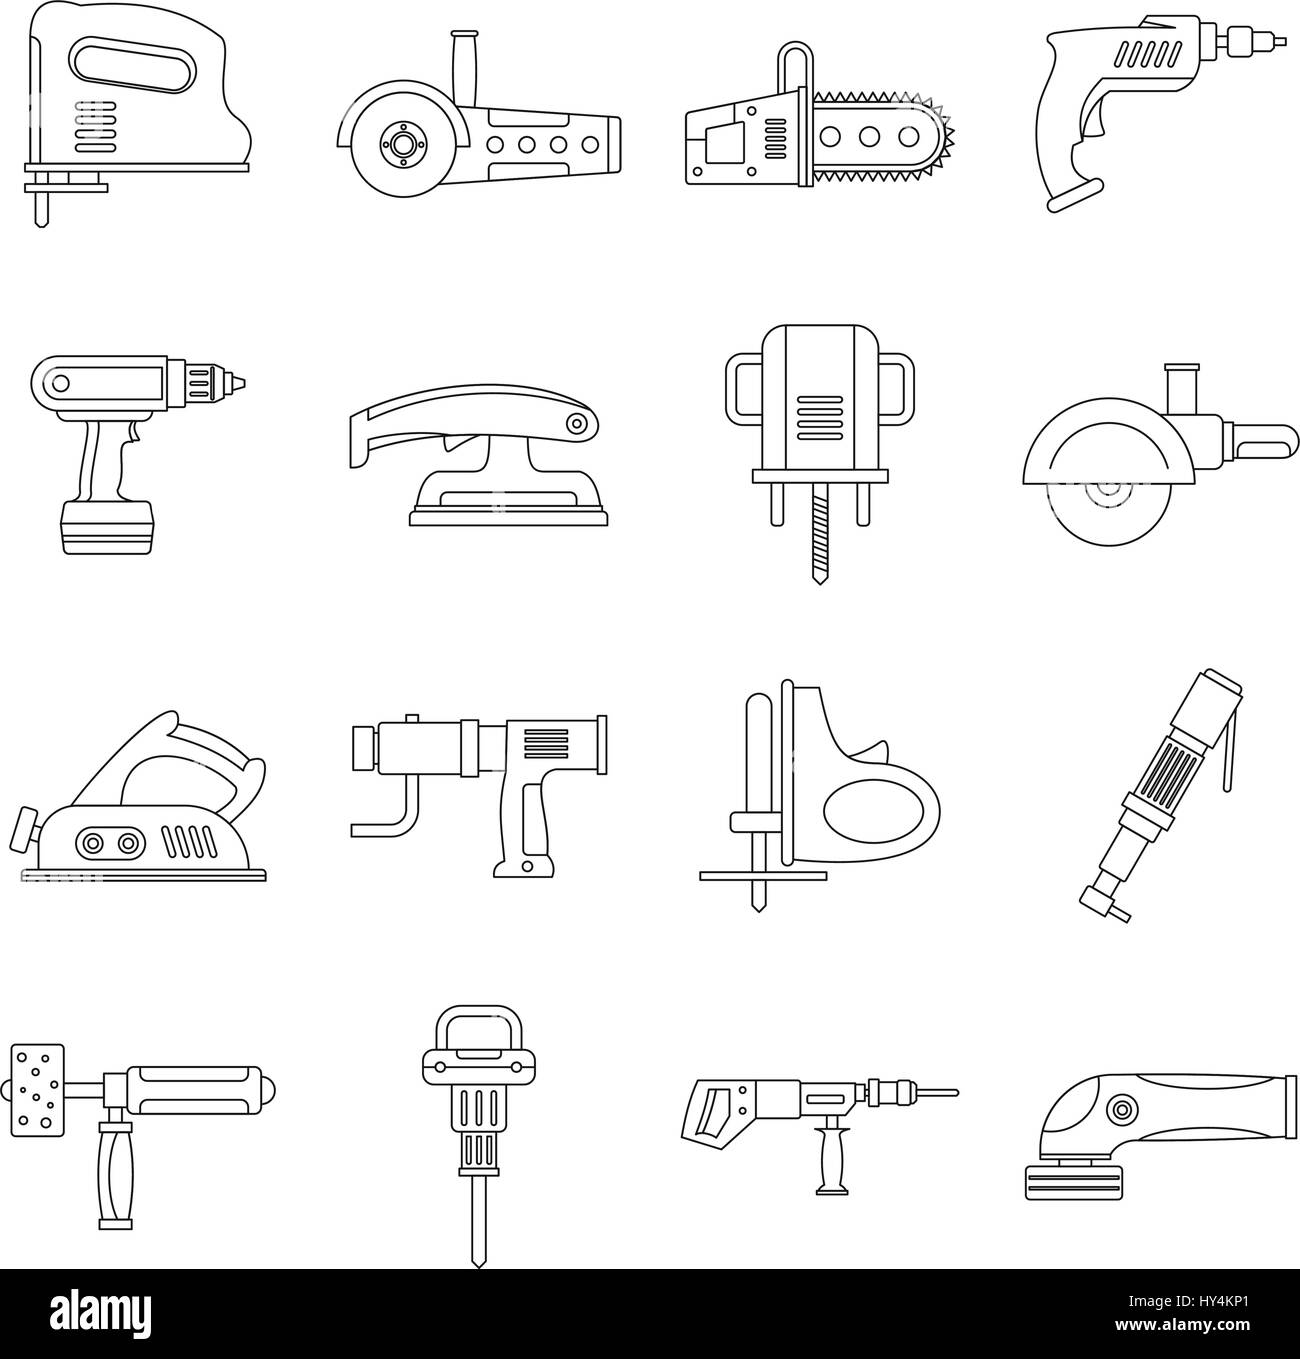 Electric tools icons set, outline style - Stock Image